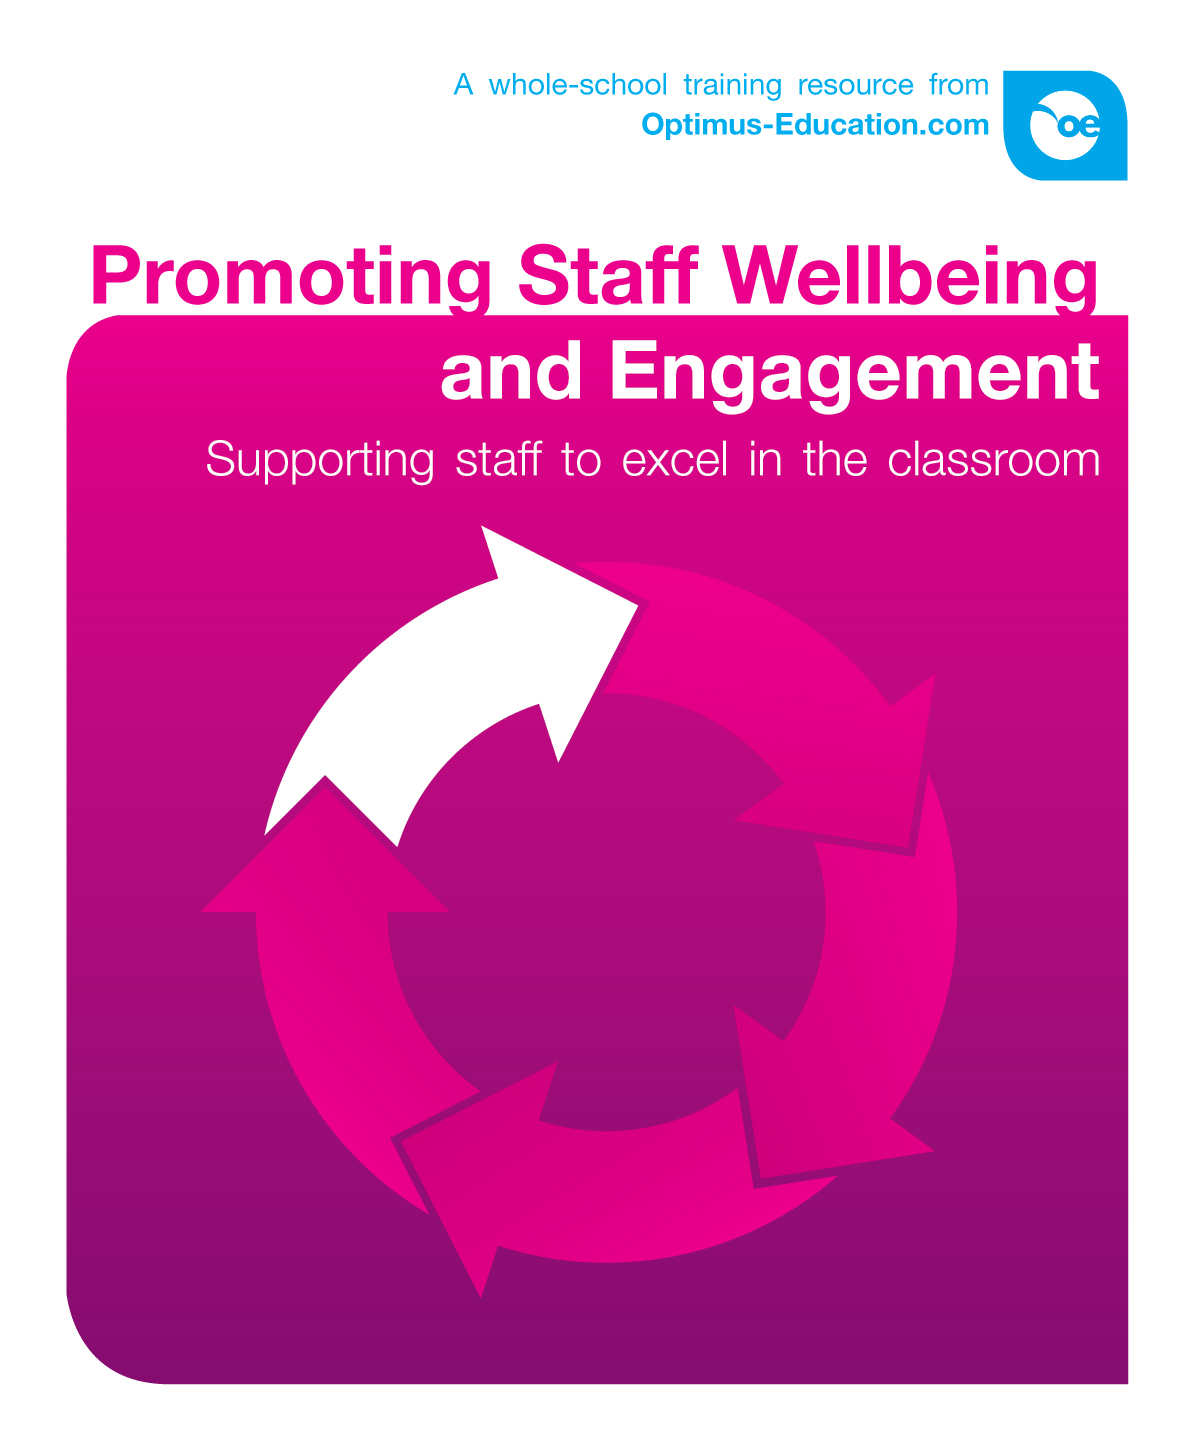 Promoting Staff Wellbeing and Engagement: Supporting staff to excel in the classroom